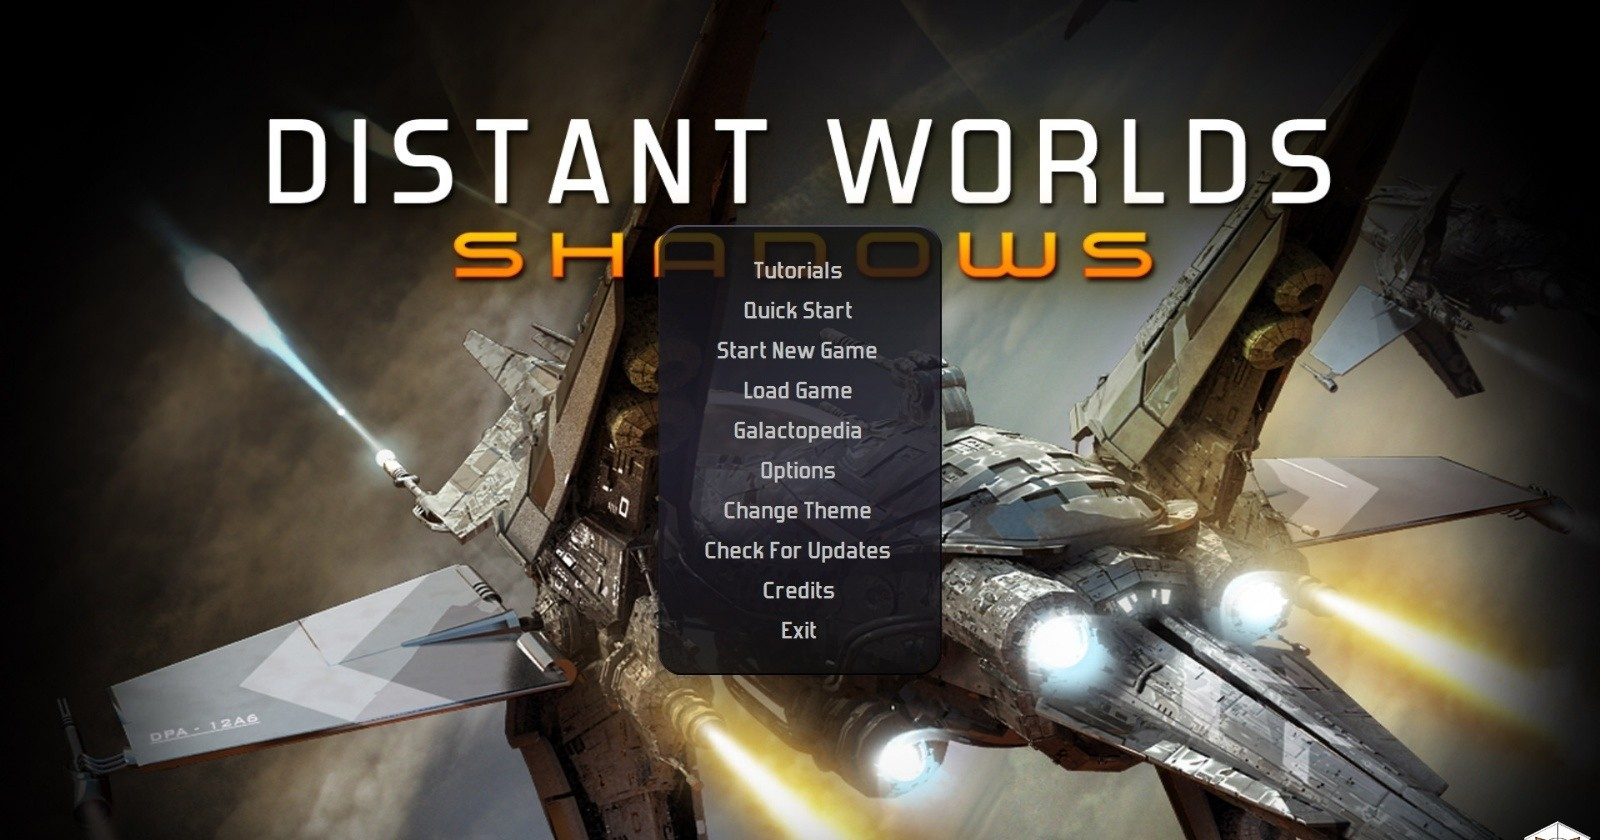 Distant Worlds: Shadows Patch